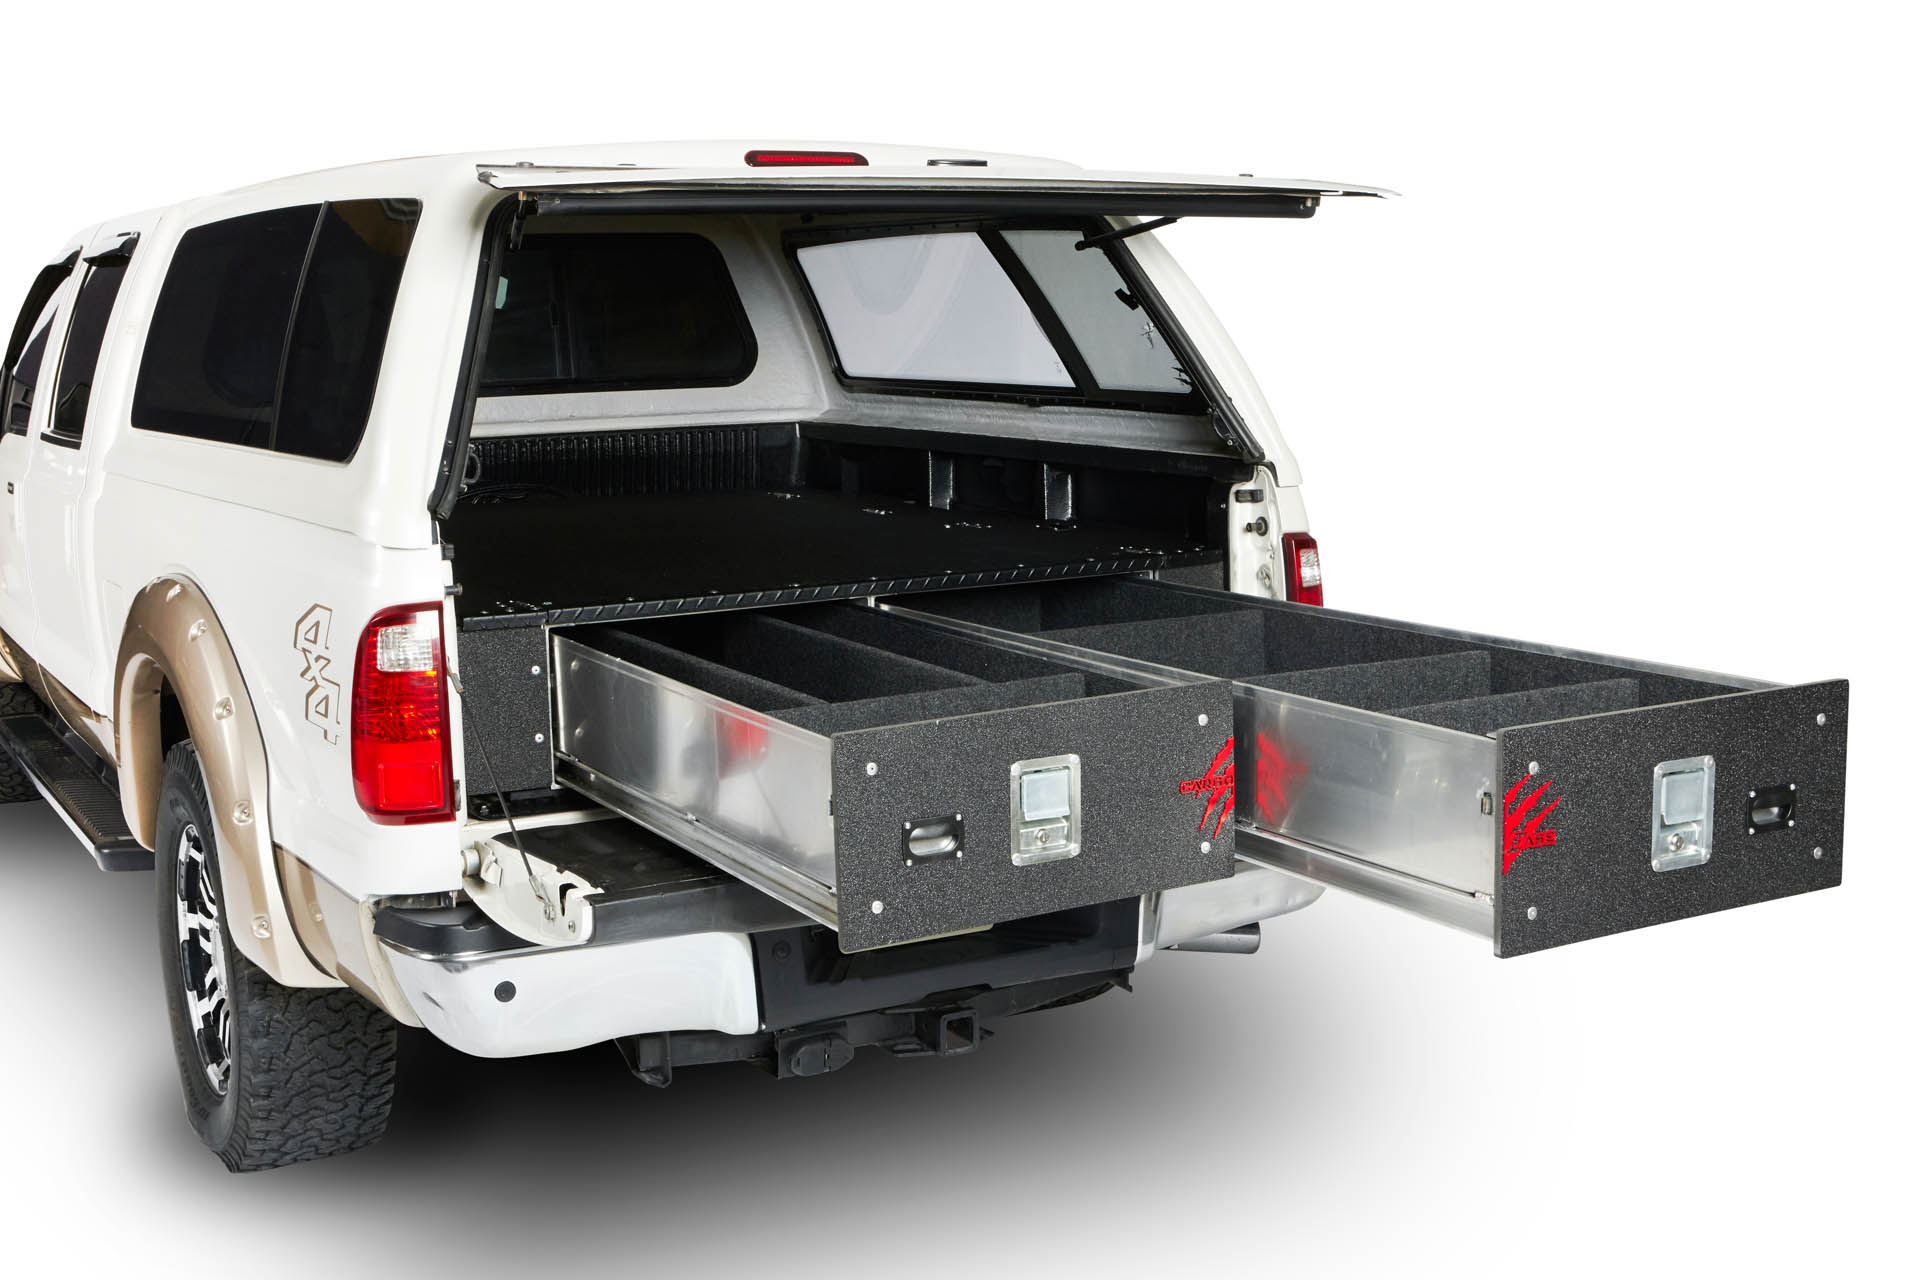 Cargo Ease Cargo Locker Base 12 Inch Dual Drawer System 07-Pres Toyota Tundra Crew Max